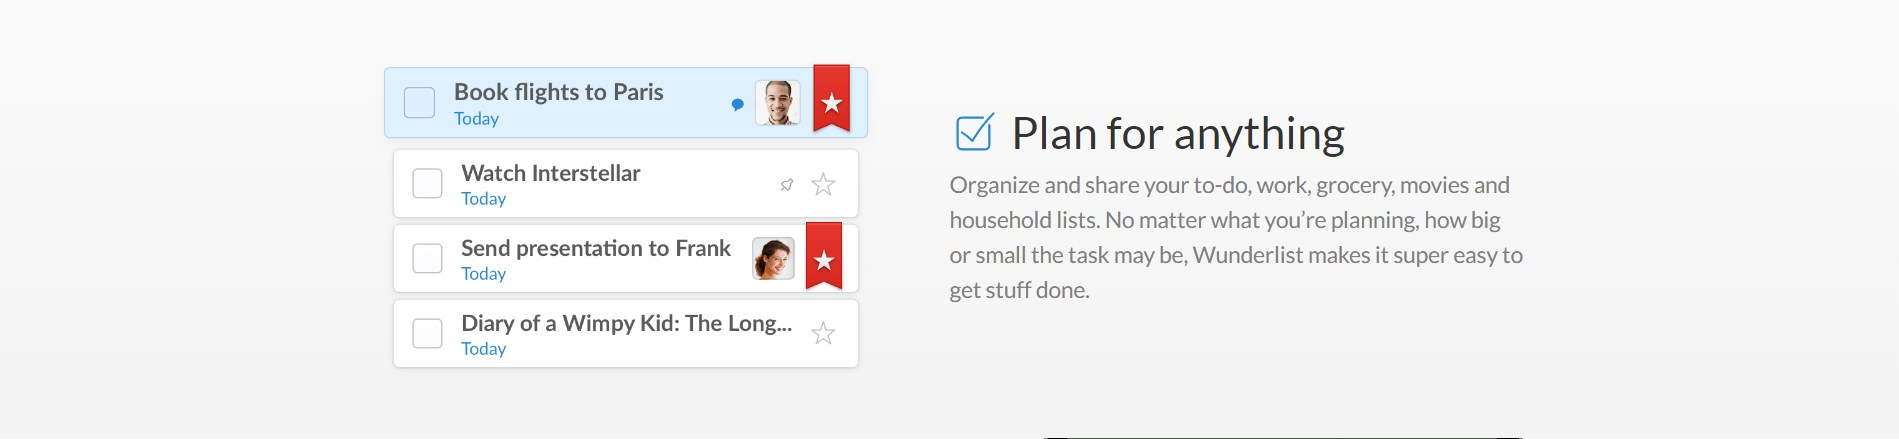 Wunderlist screenshot 1